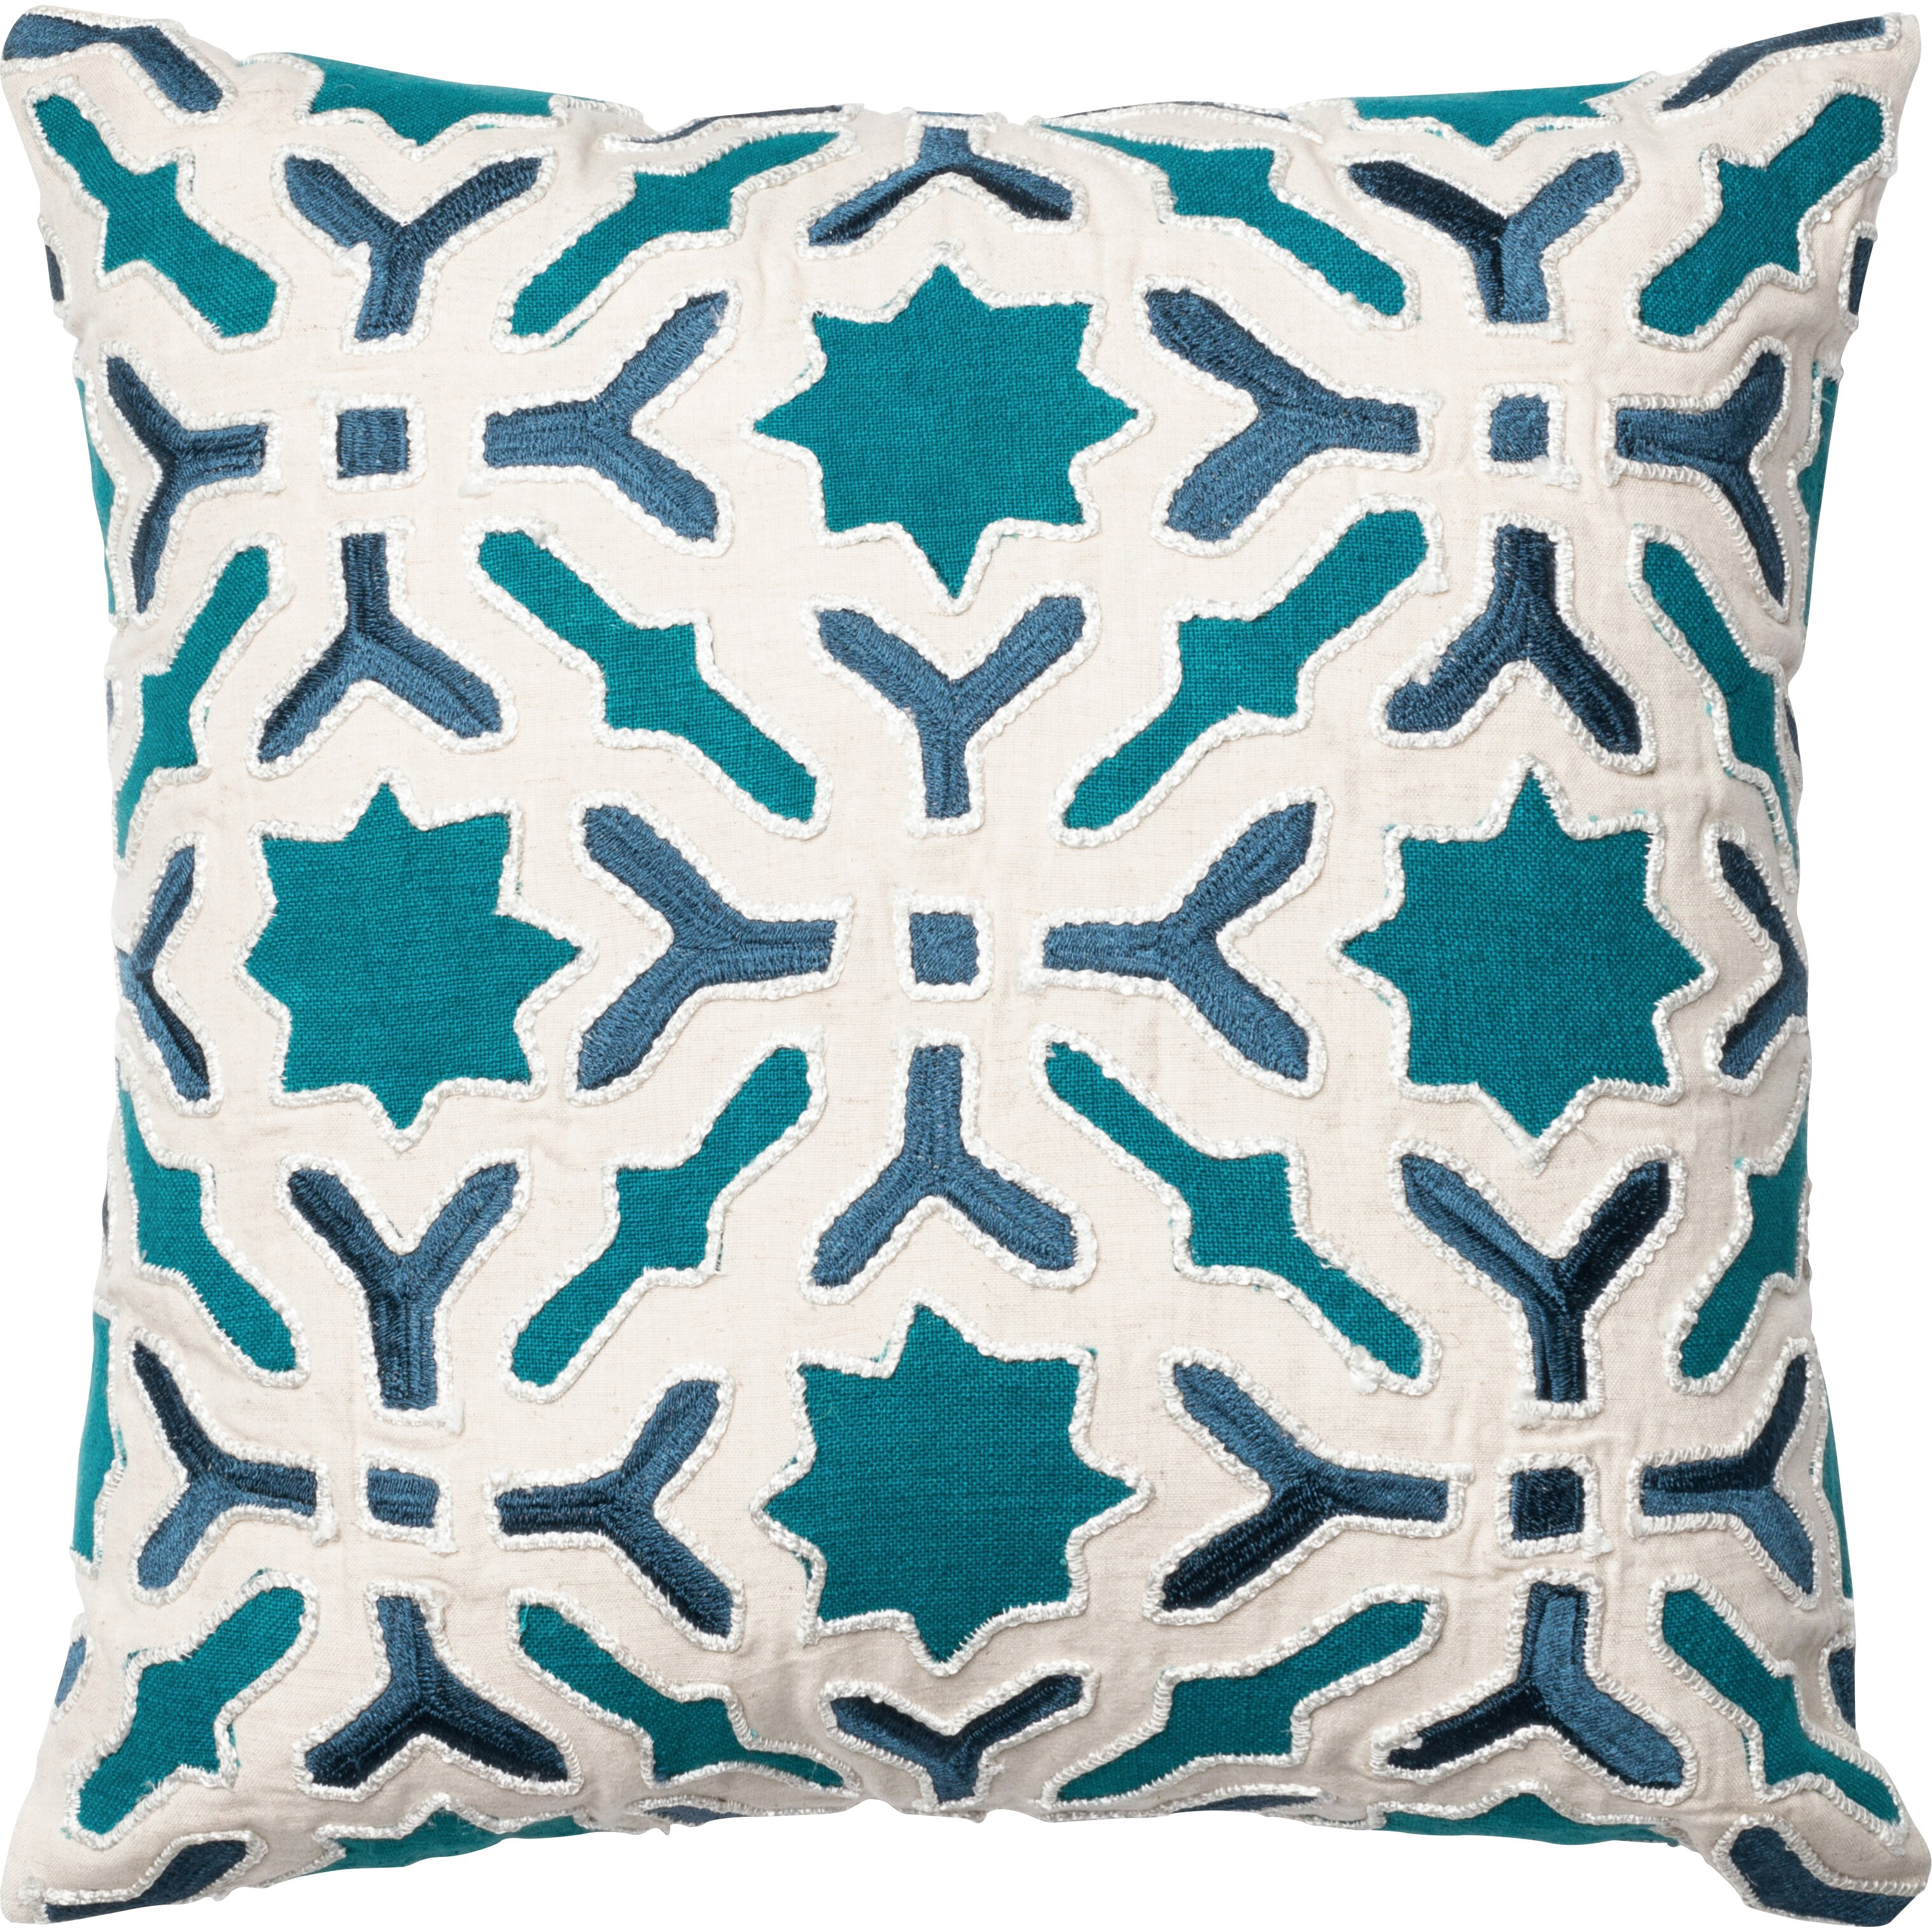 Wayfair Teal Throw Pillows : Loloi Rugs Throw Pillow Wayfair